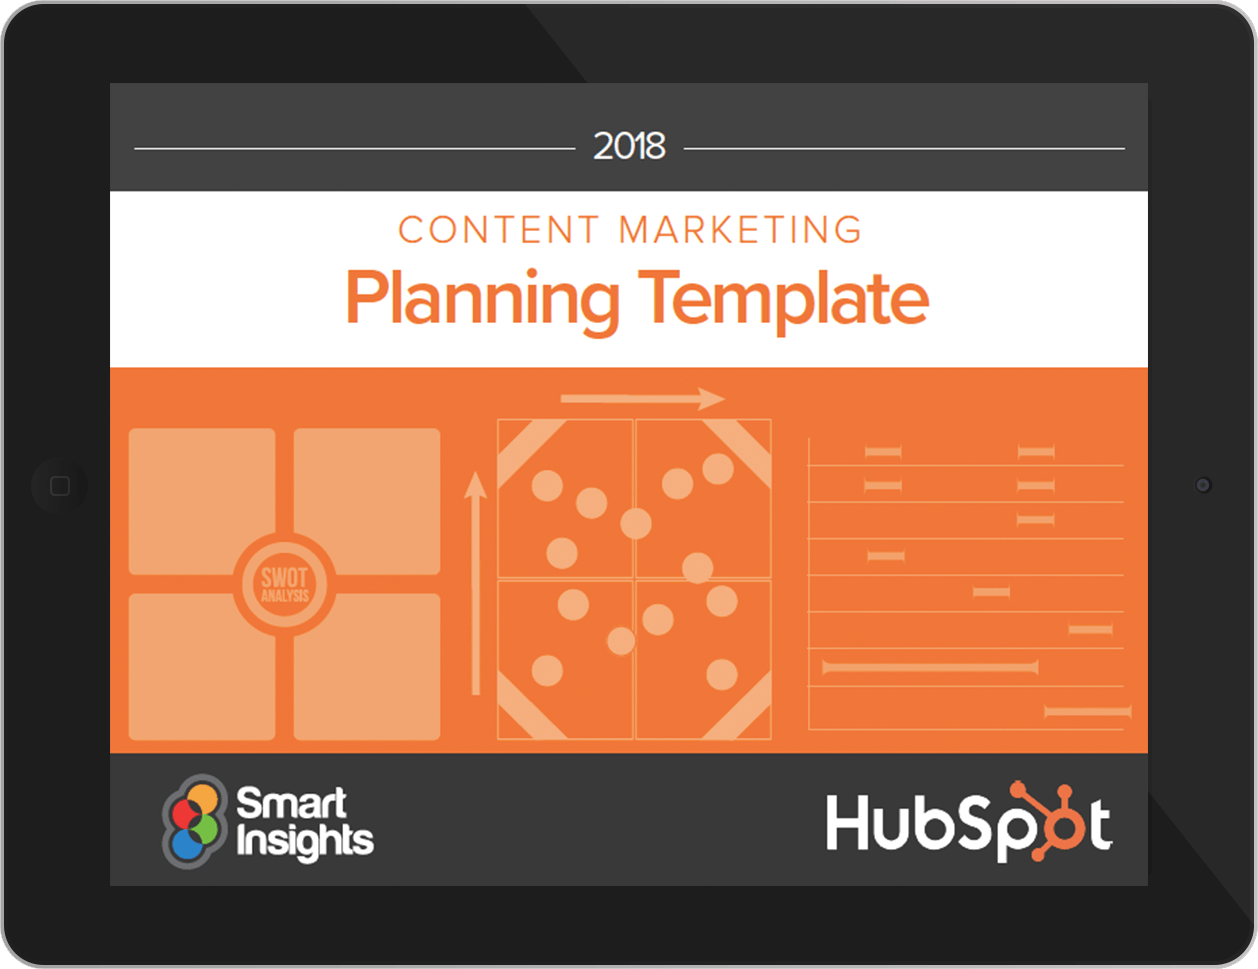 Your Content Planning Templates